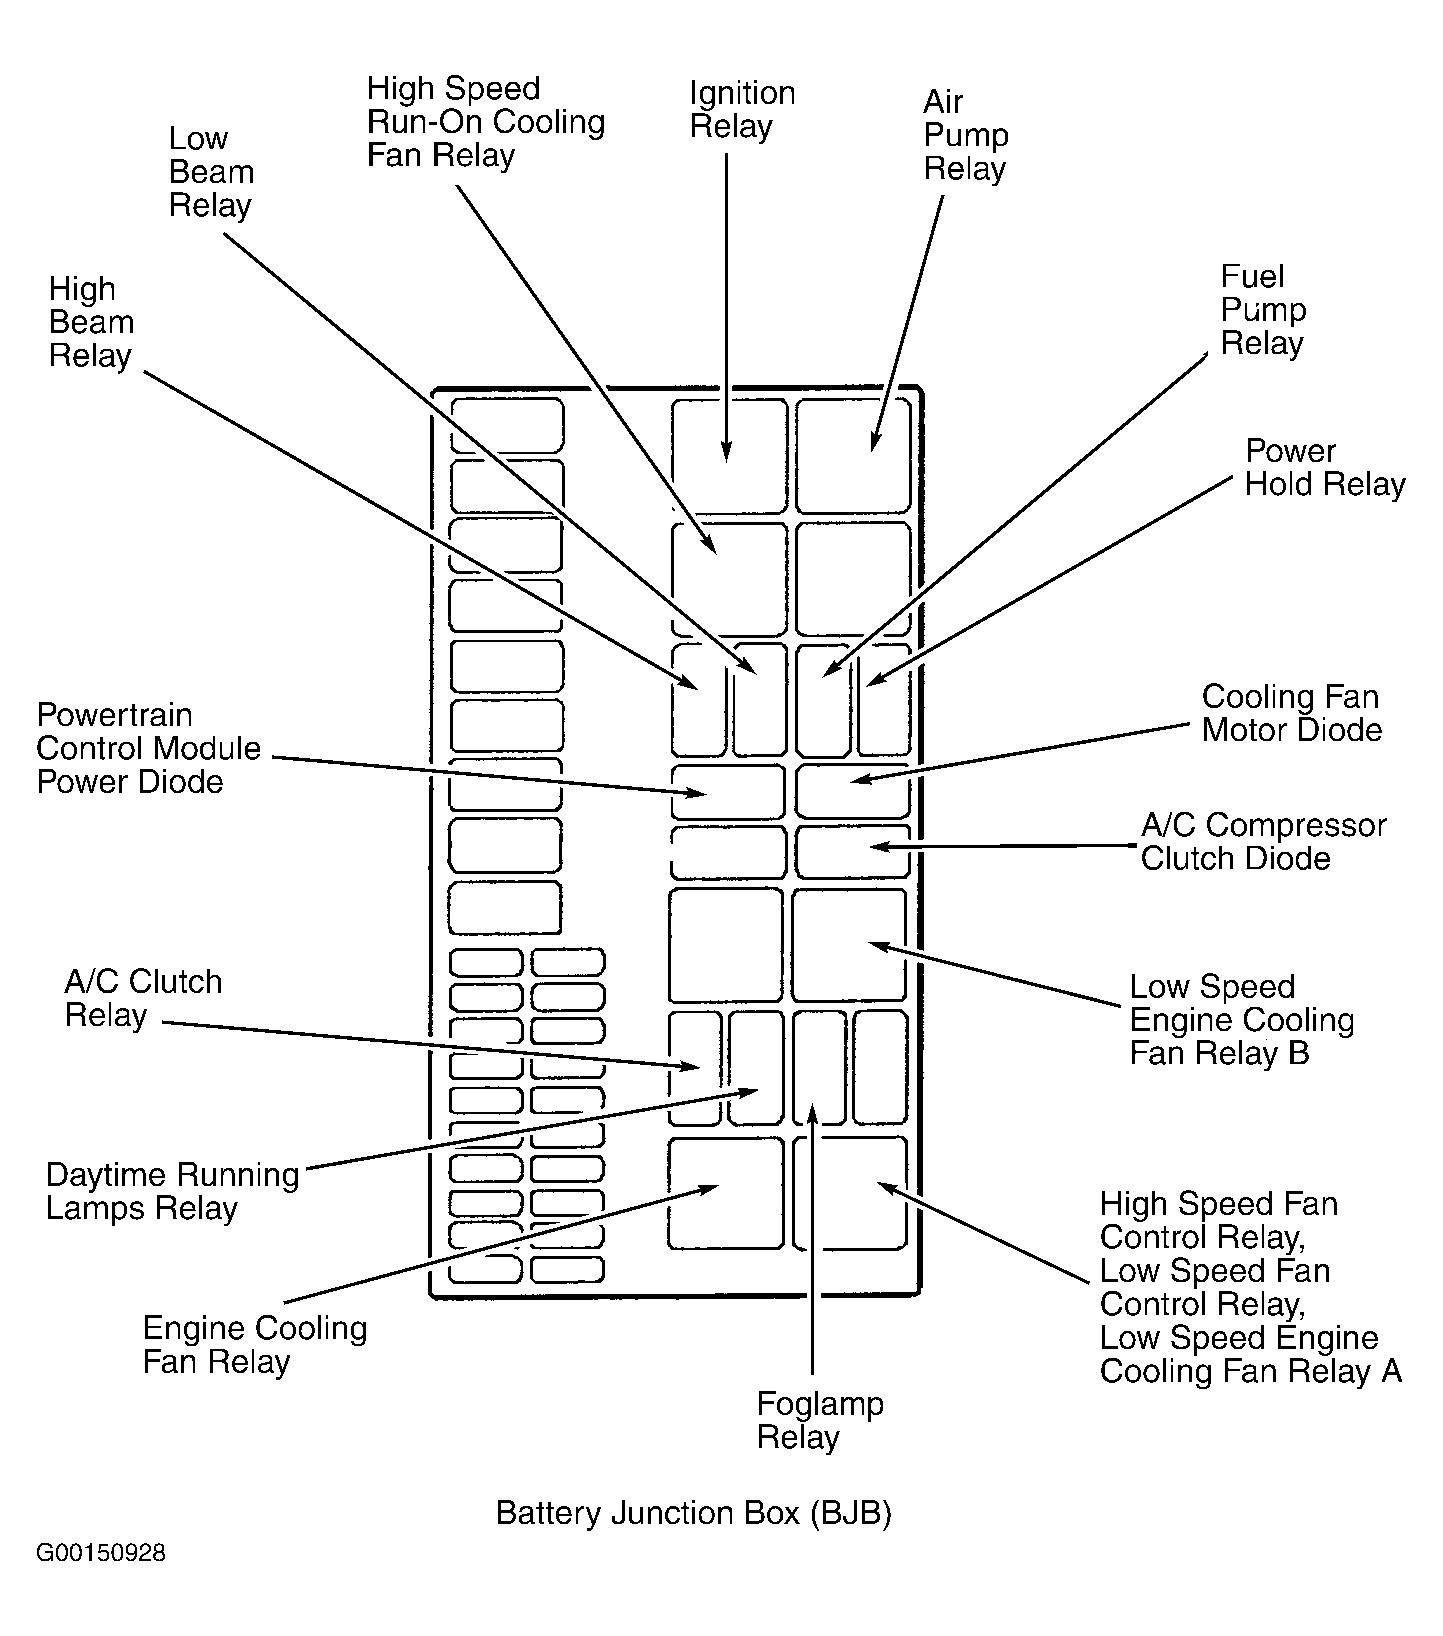 2007 ford focus fuel system diagram 2005 ford focus hard carter fuel tank sending unit wiring diagram